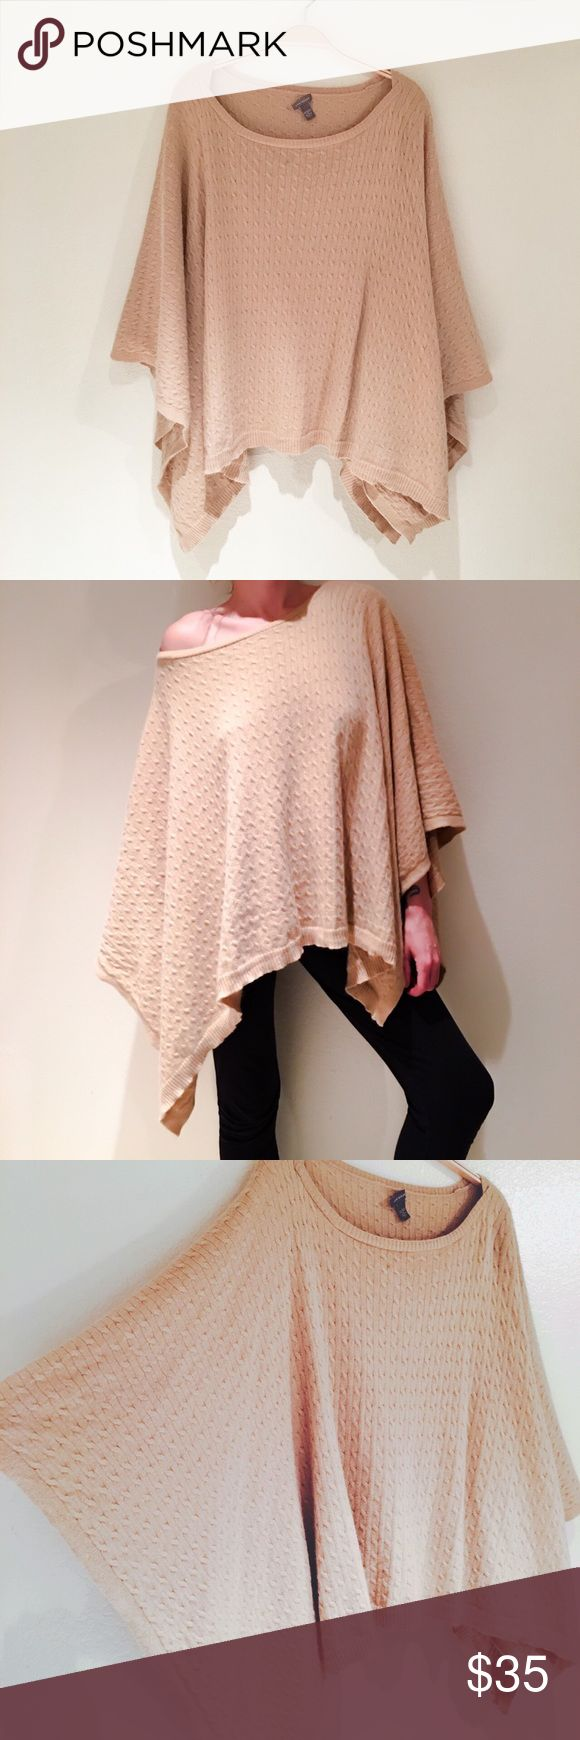 """Ann Taylor Asymmetrical Poncho Caplet Amazingly soft cable knit asymmetrical cut poncho Capelet. No armholes or sleeves. Warm and comfortable tan color made of 62% nylon, 28% rabbit hair, and 10% wool (not itchy at all). The size tag has been cut off and the tag is half coming undone. There is a tiny mark along the bottom hem.  Edges are 34"""" long, middle is 22"""" long. Ribbed Boatneck neckline and bottom hem. Ann Taylor Jackets & Coats Capes"""